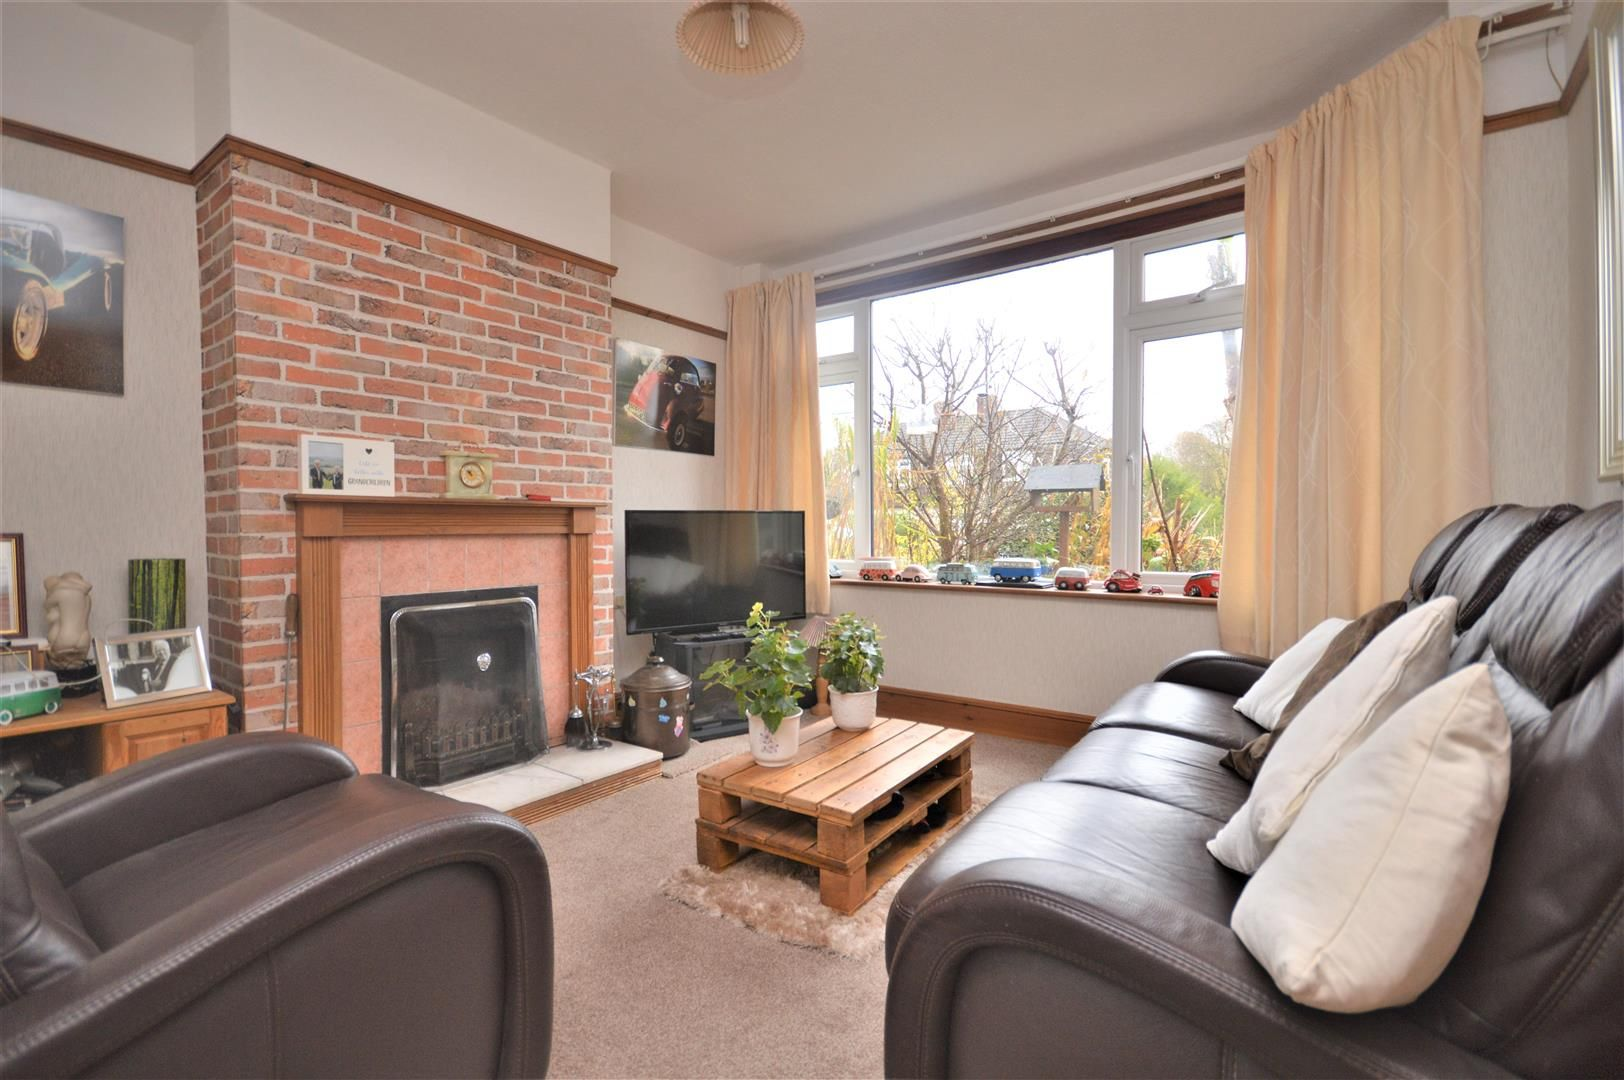 3 bed semi-detached for sale in Hereford 5